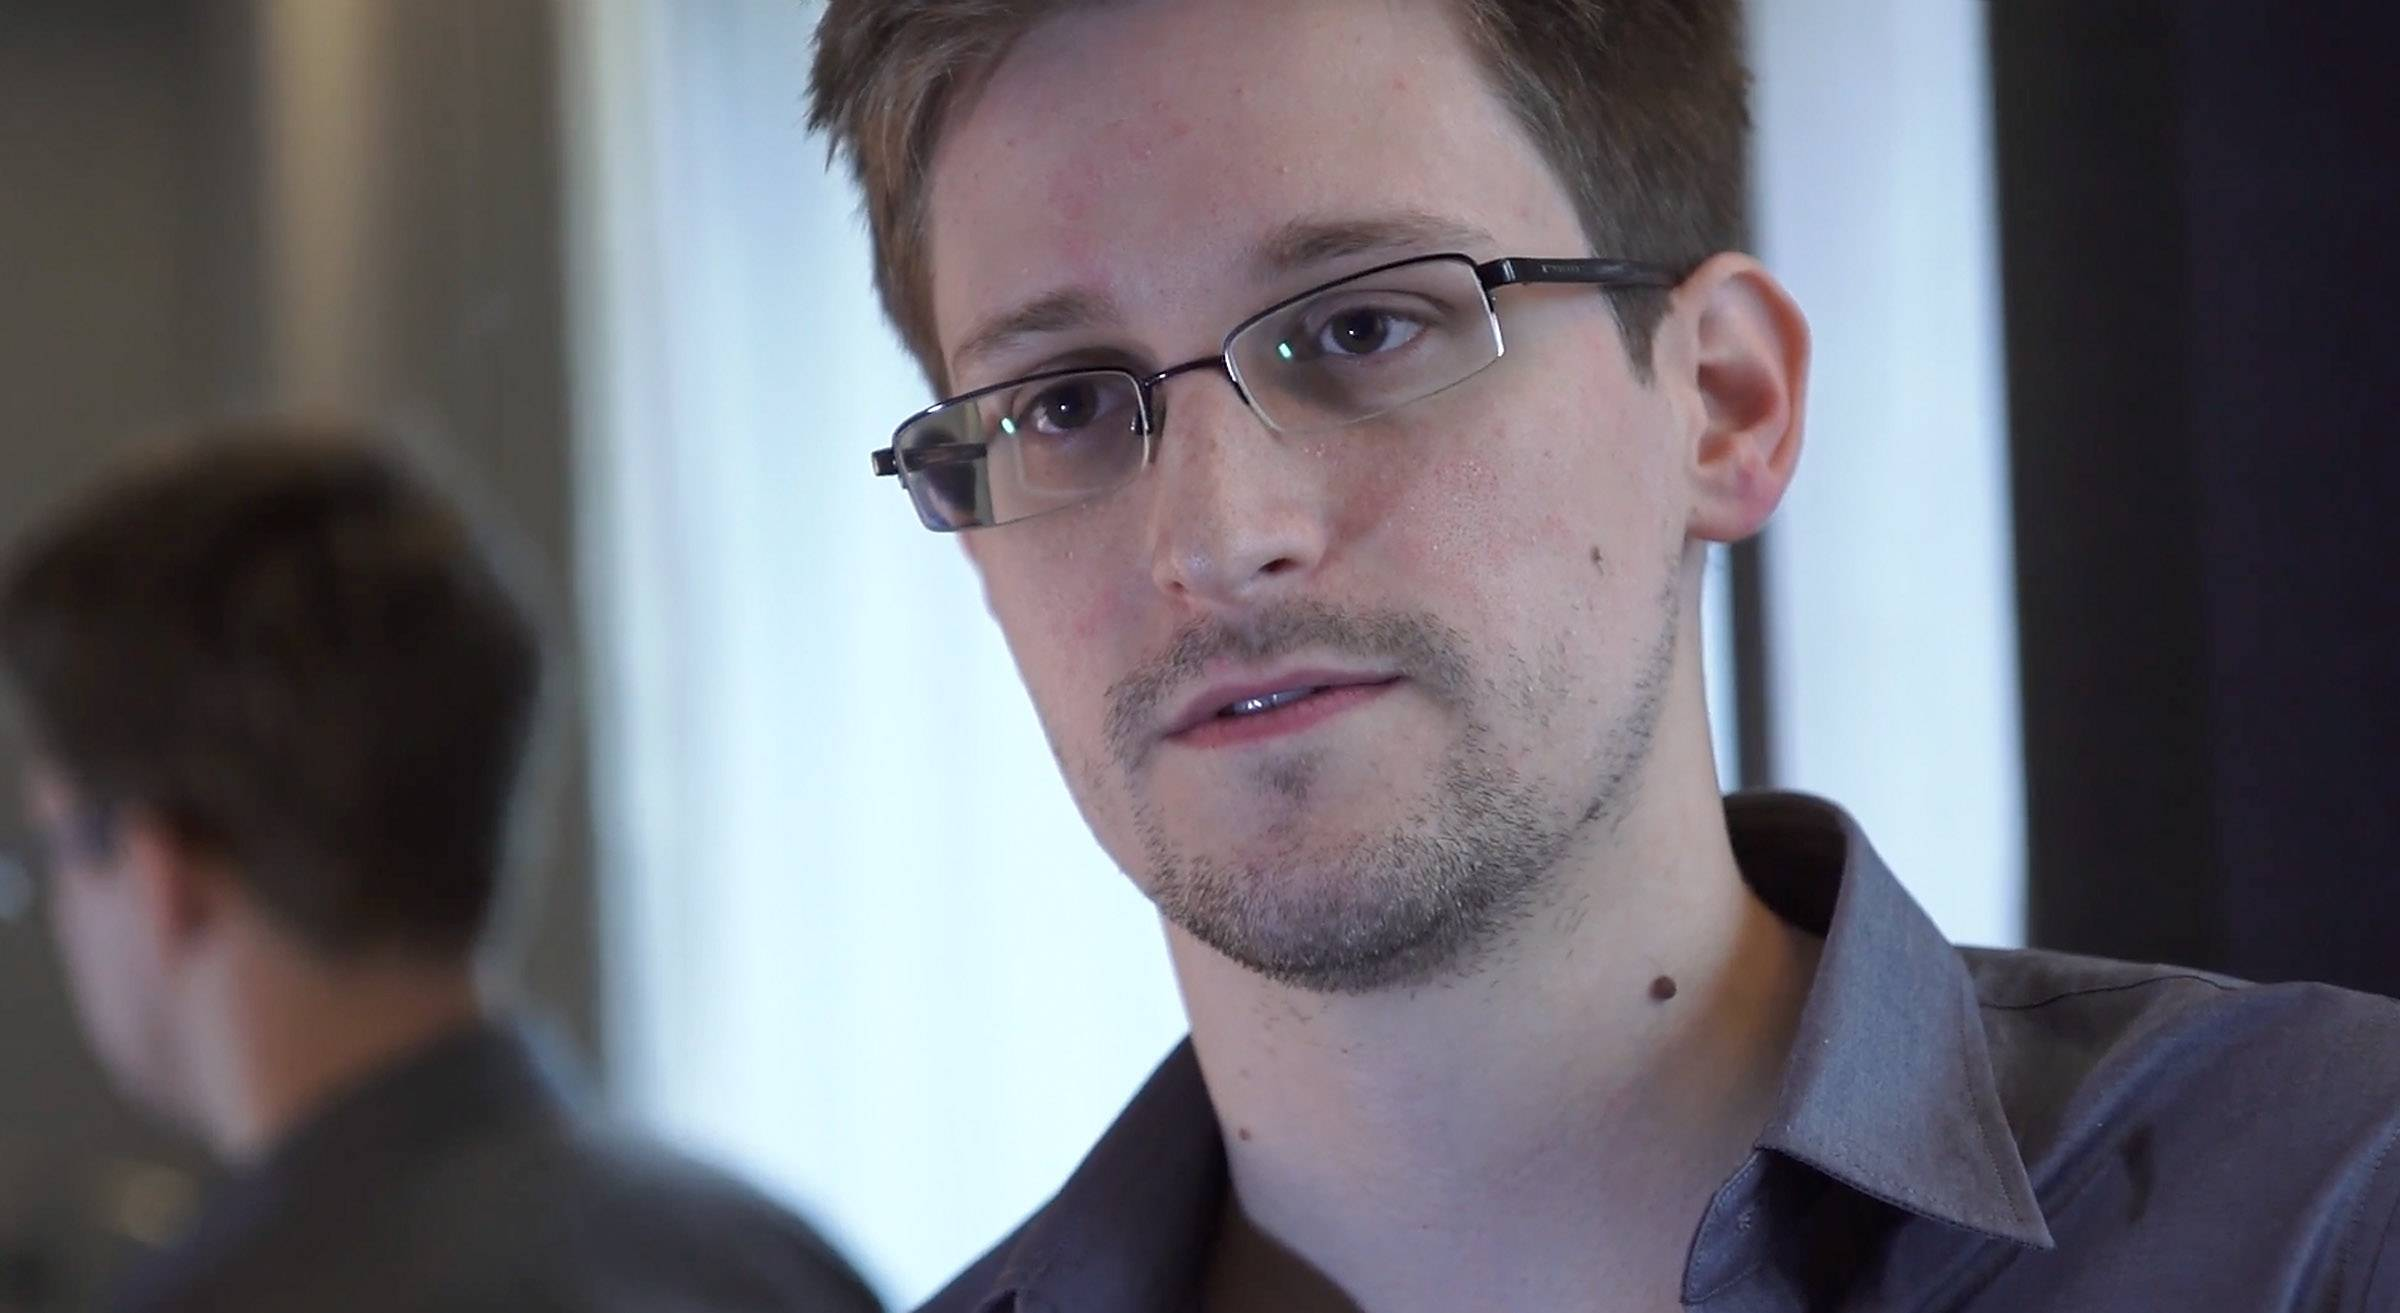 Edward Snowden en entrevista con The Guardian, en 2013.